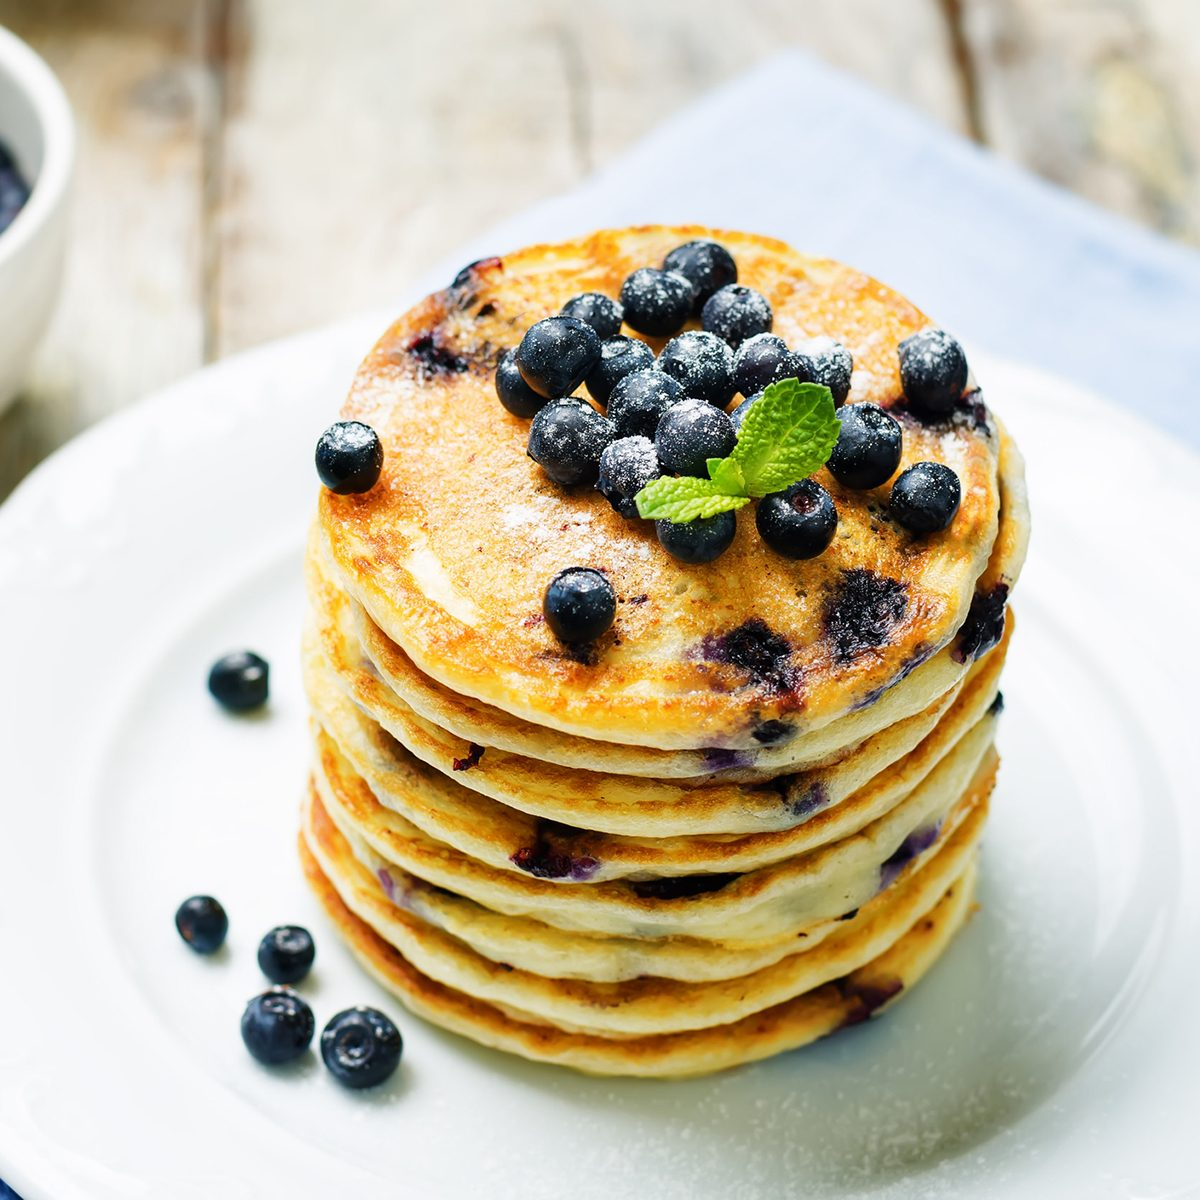 Blueberry Ricotta Pancakes with fresh blueberries and cup of coffee. toning. selective focus